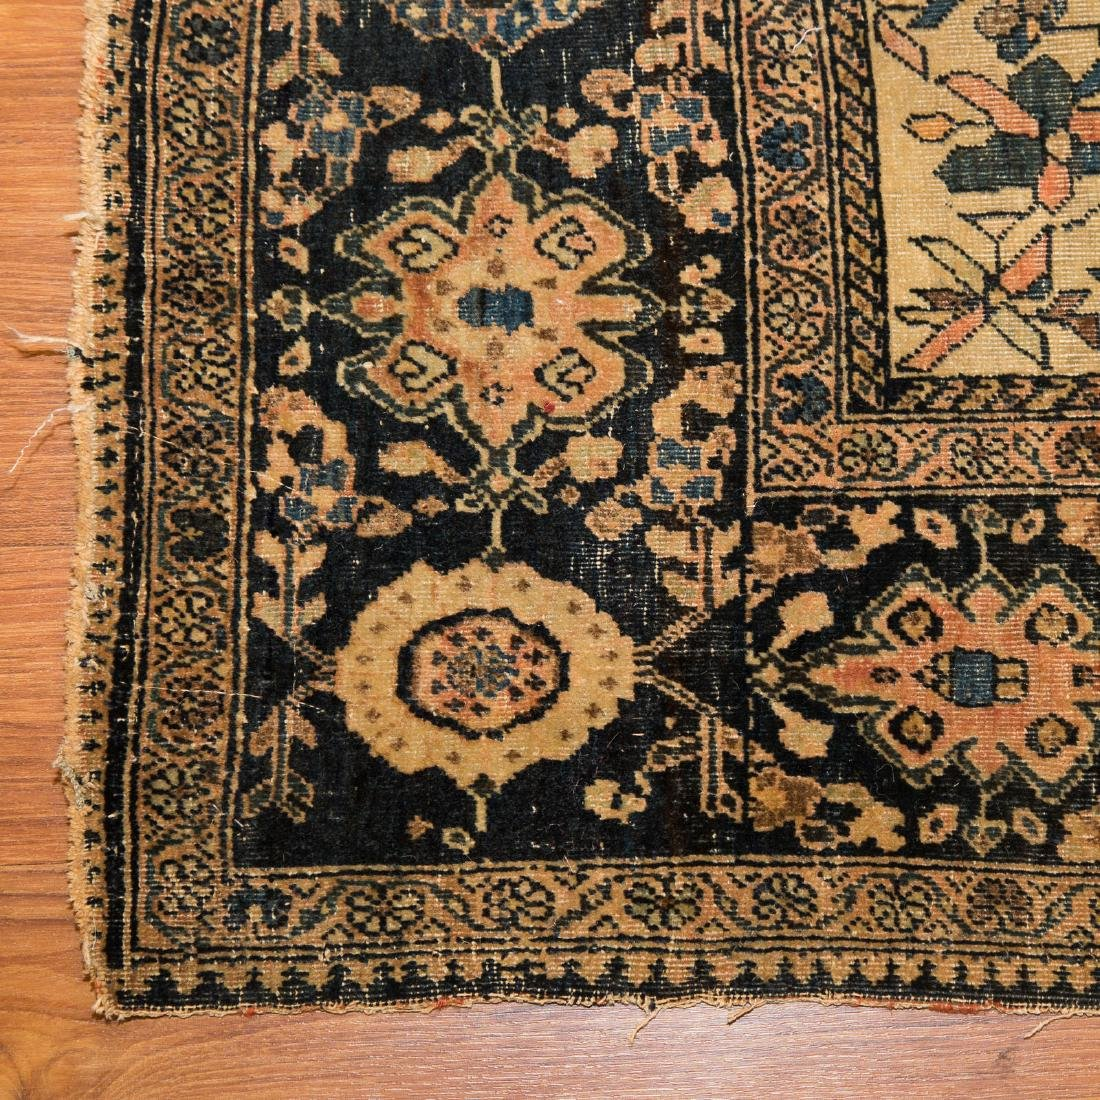 Antique Feraghan Sarouk rug, approx. 4 x 6.7 - 2